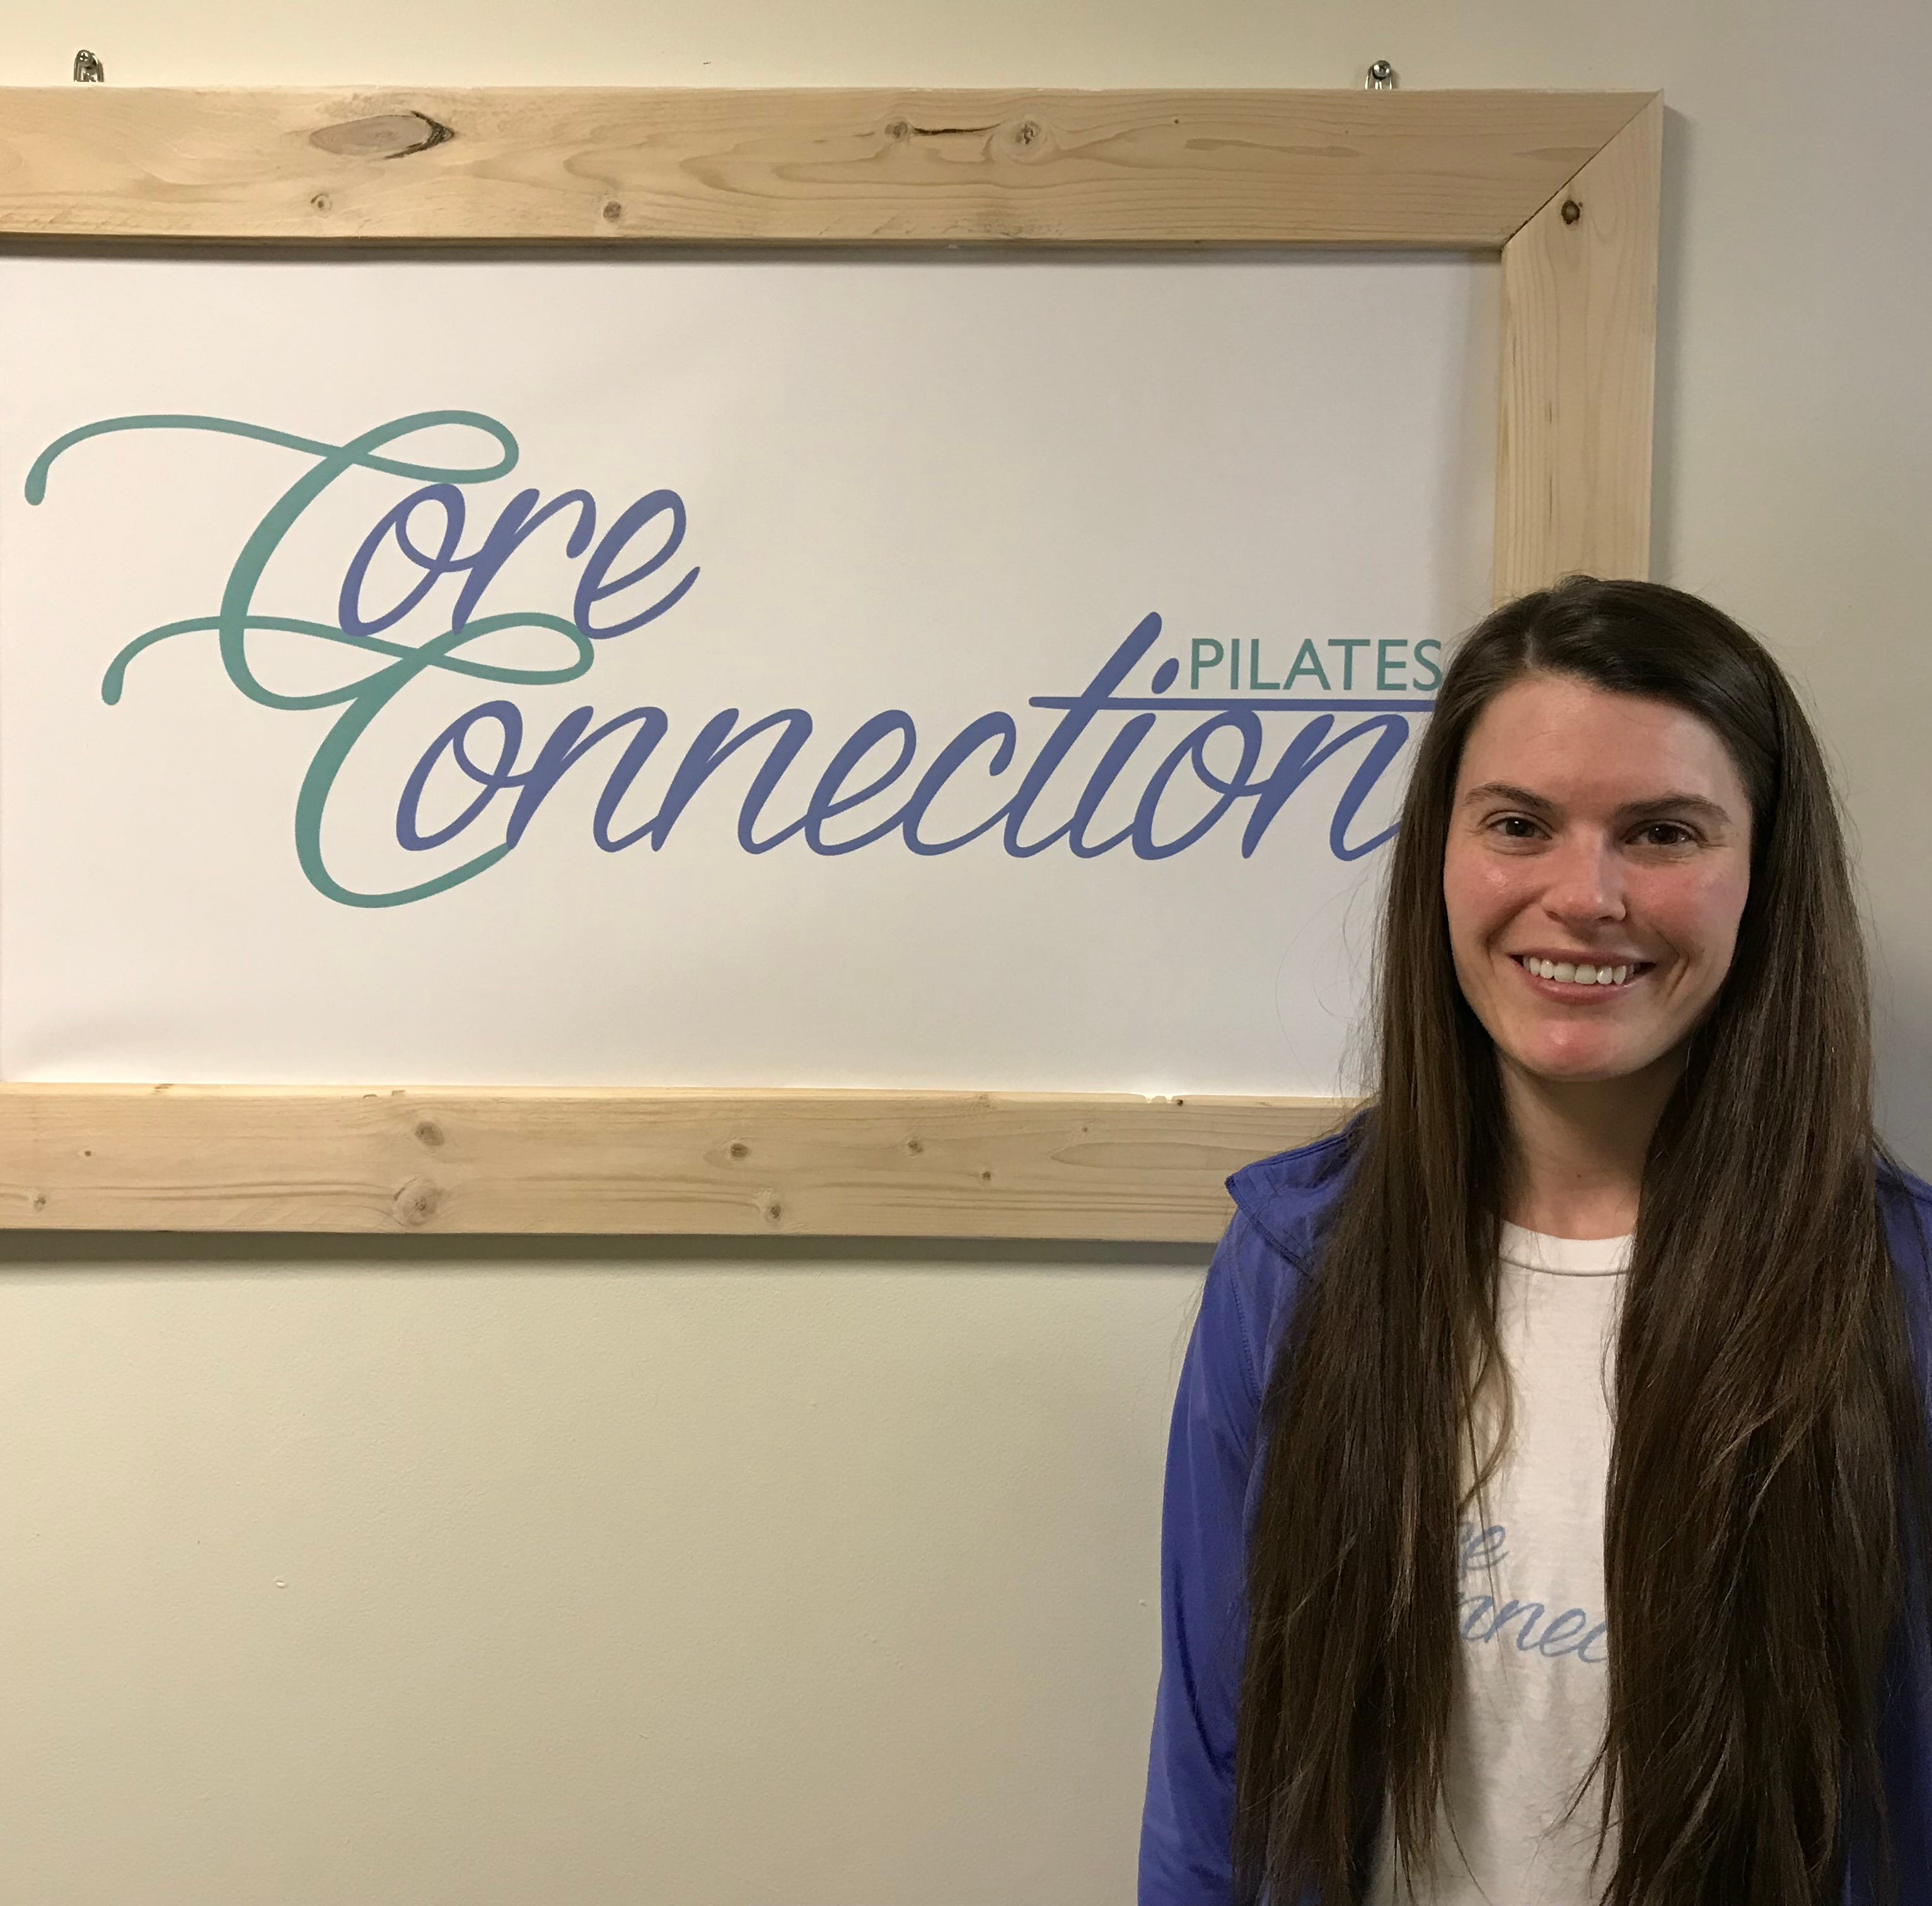 Core Connection Pilates to open in Sheboygan on March 1 | Streetwise